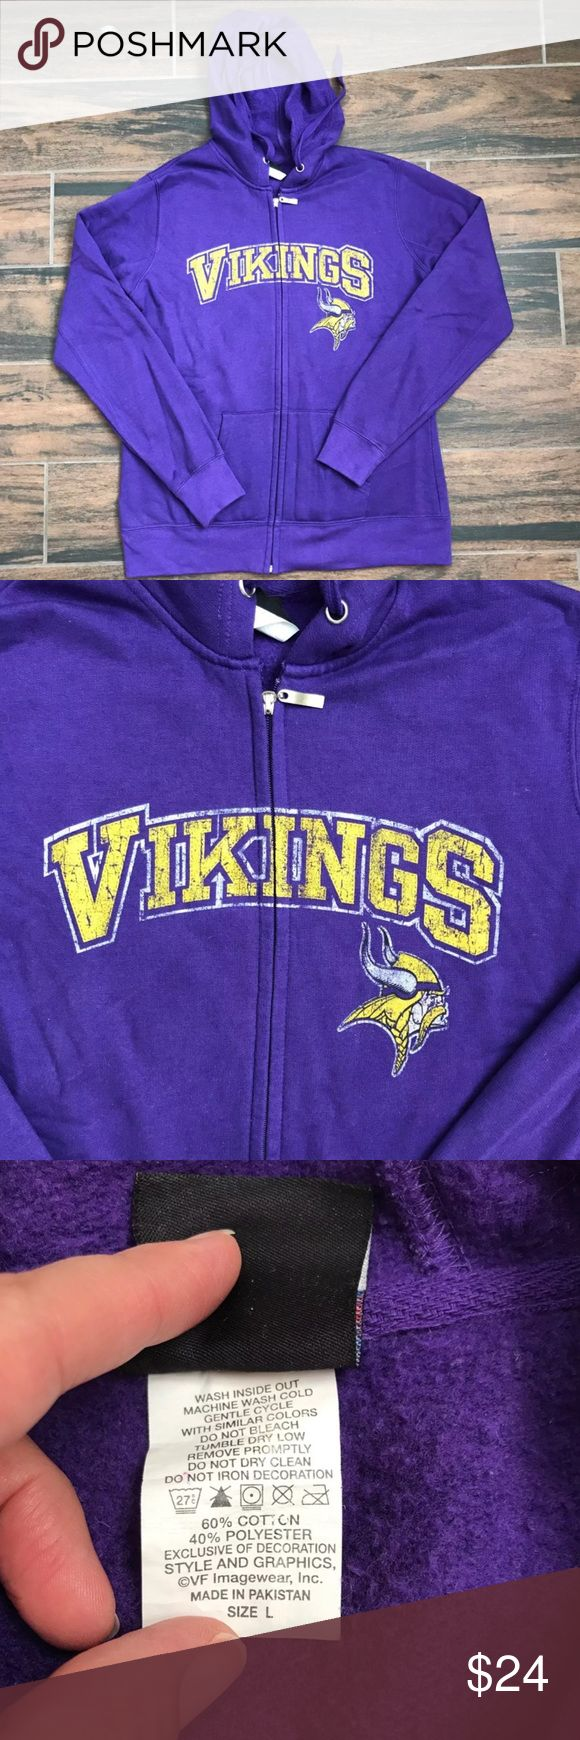 """🏈 Minnesota Vikings purple zip front hoodie Excellent condition zip front hoodie in a rich purple with a vintage look screen of the Vikings logo.  Fuzzy inside. This is not a heavy sweatshirt.  I only wore this once to go to the game and it has been folded in a cabinet since.  Size L (but fits like a medium) Bust when zipped 21"""" Full length sleeves Front pockets  See pic of tag for material content. Tops Sweatshirts & Hoodies"""